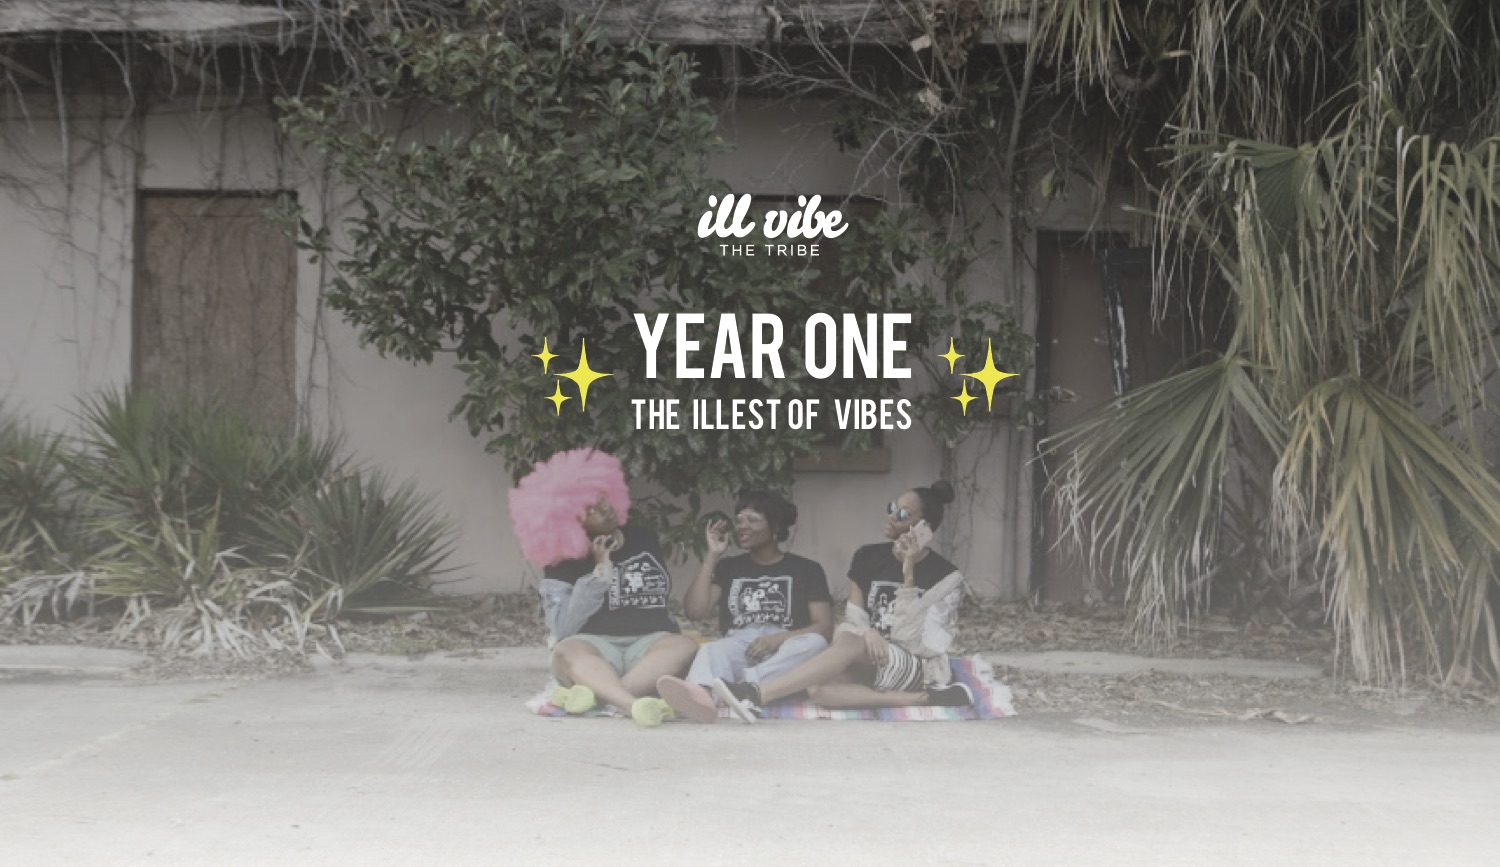 One Year of the Illest Vibes